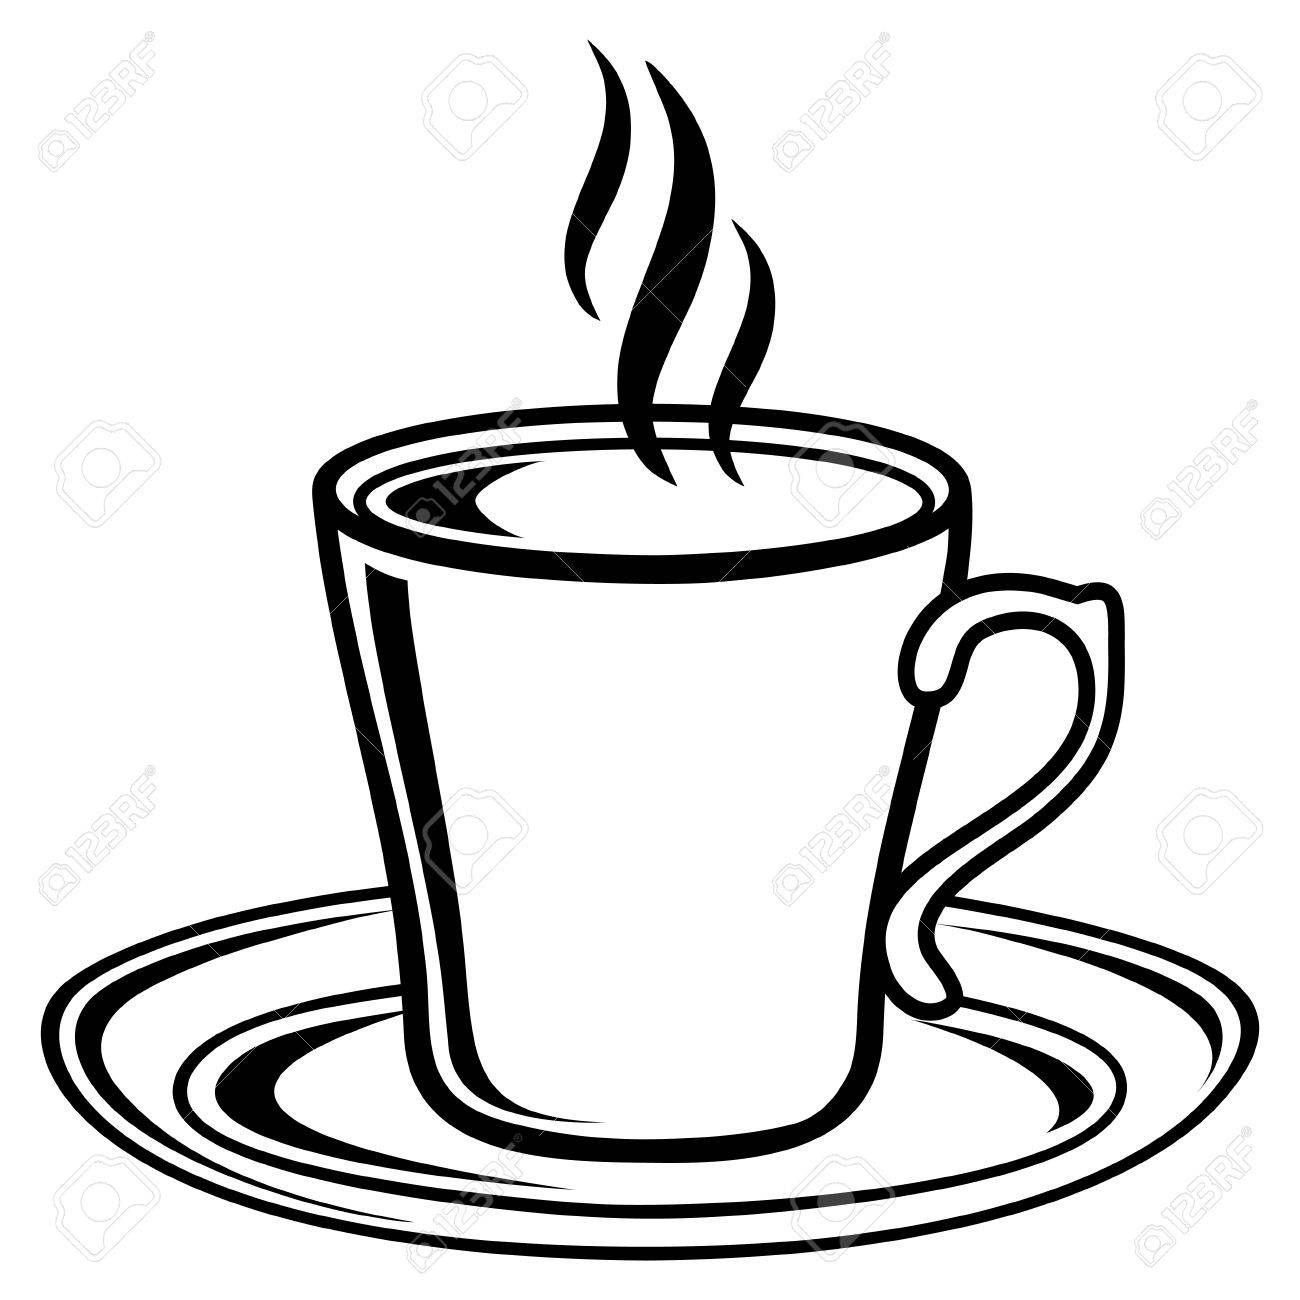 Black and white coffee tea cup icon.